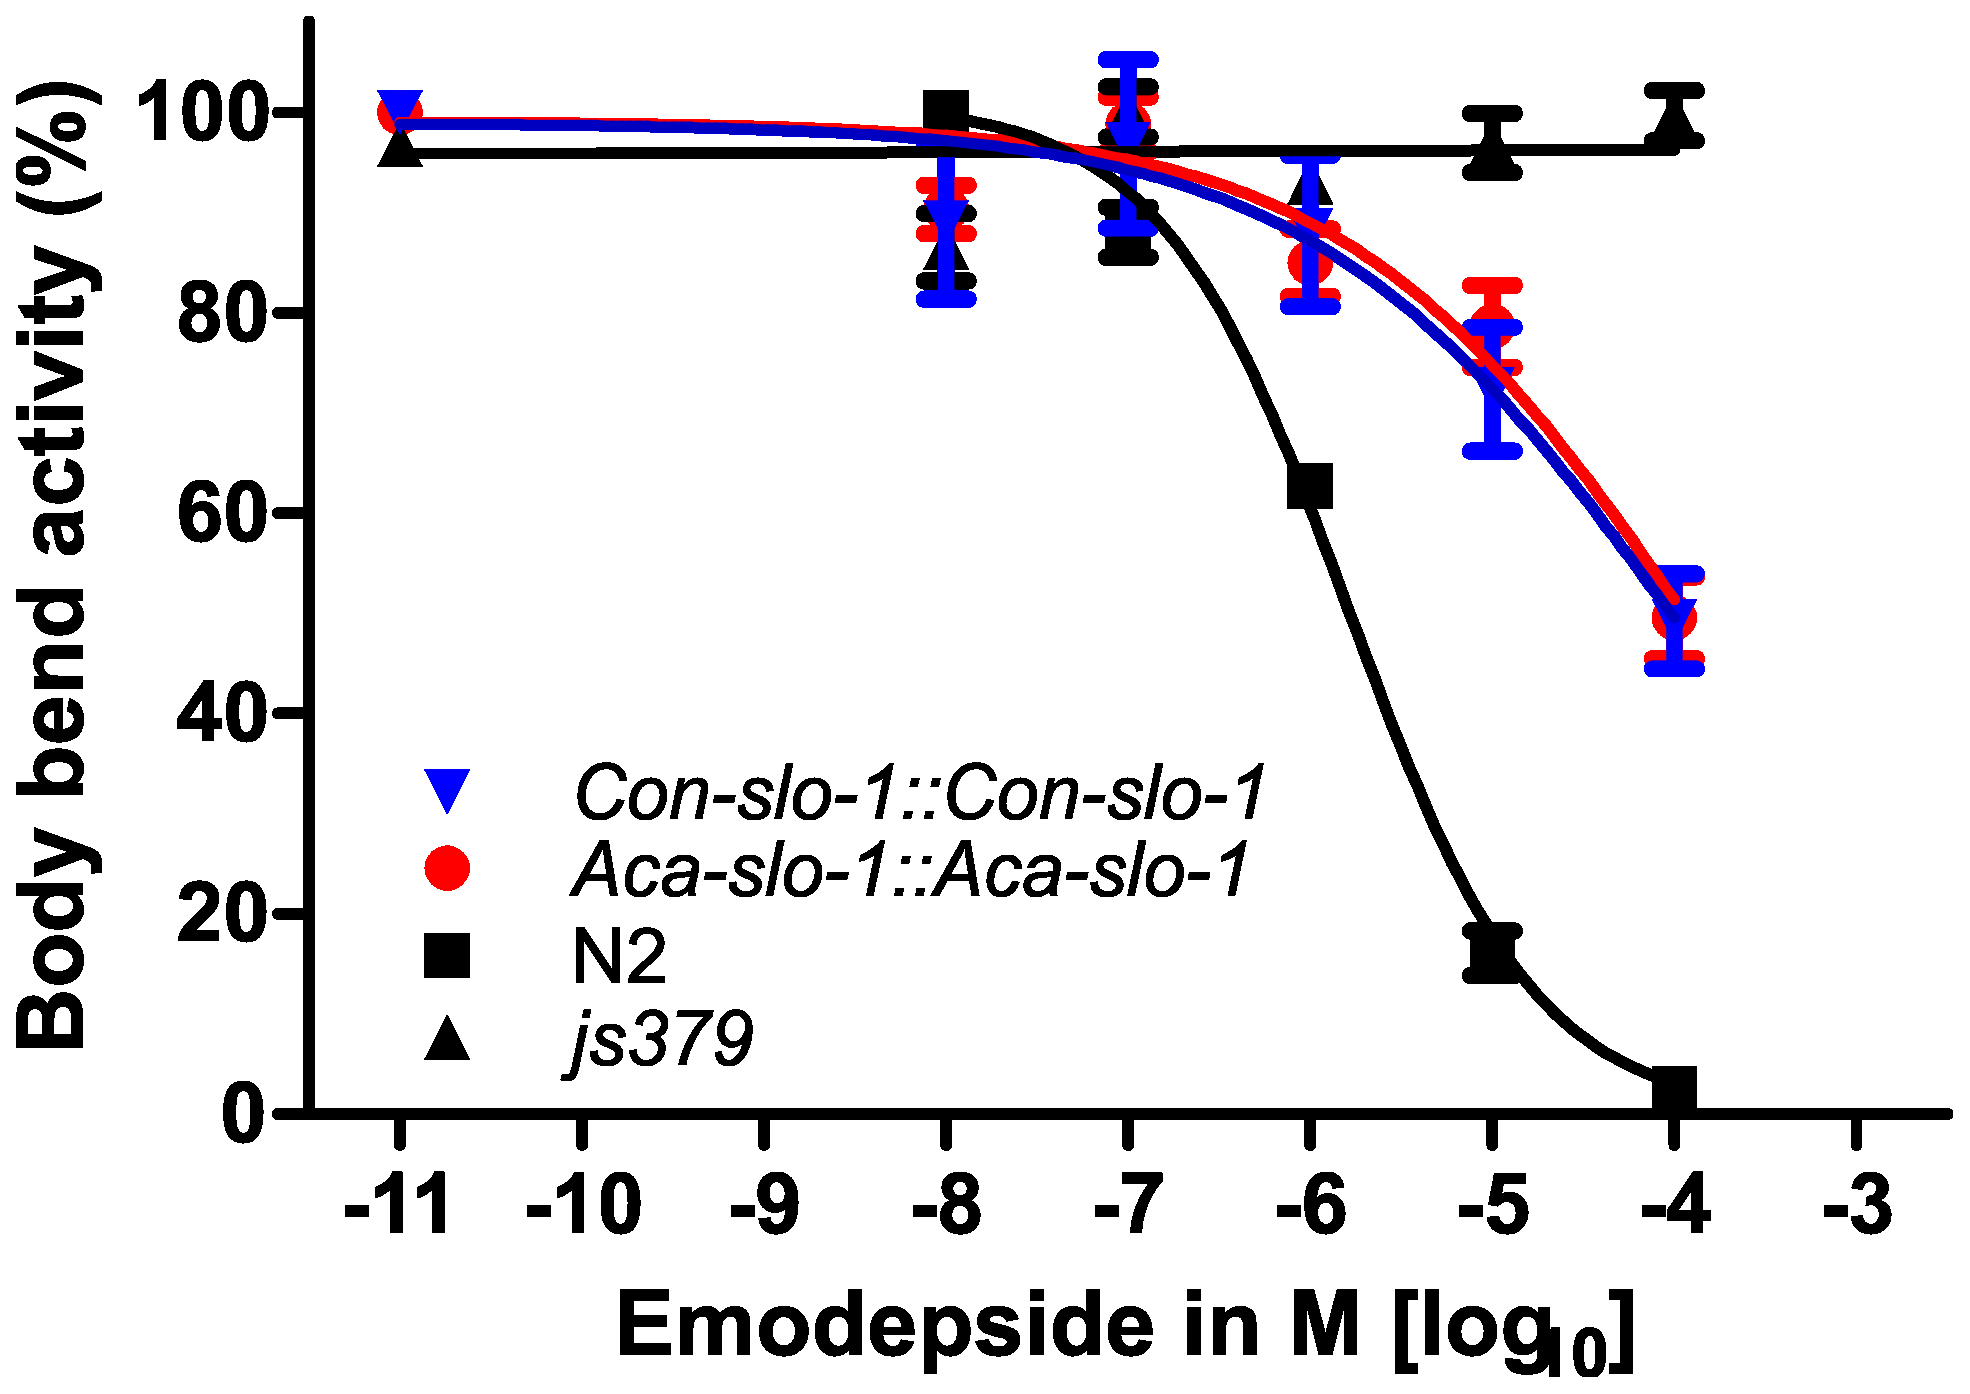 Parasite SLO-1 expressed from parasite-derived <i>slo-1</i> promoters partially recover emodepside susceptibility in resistant <i>slo-1</i> loss-of-function mutants.